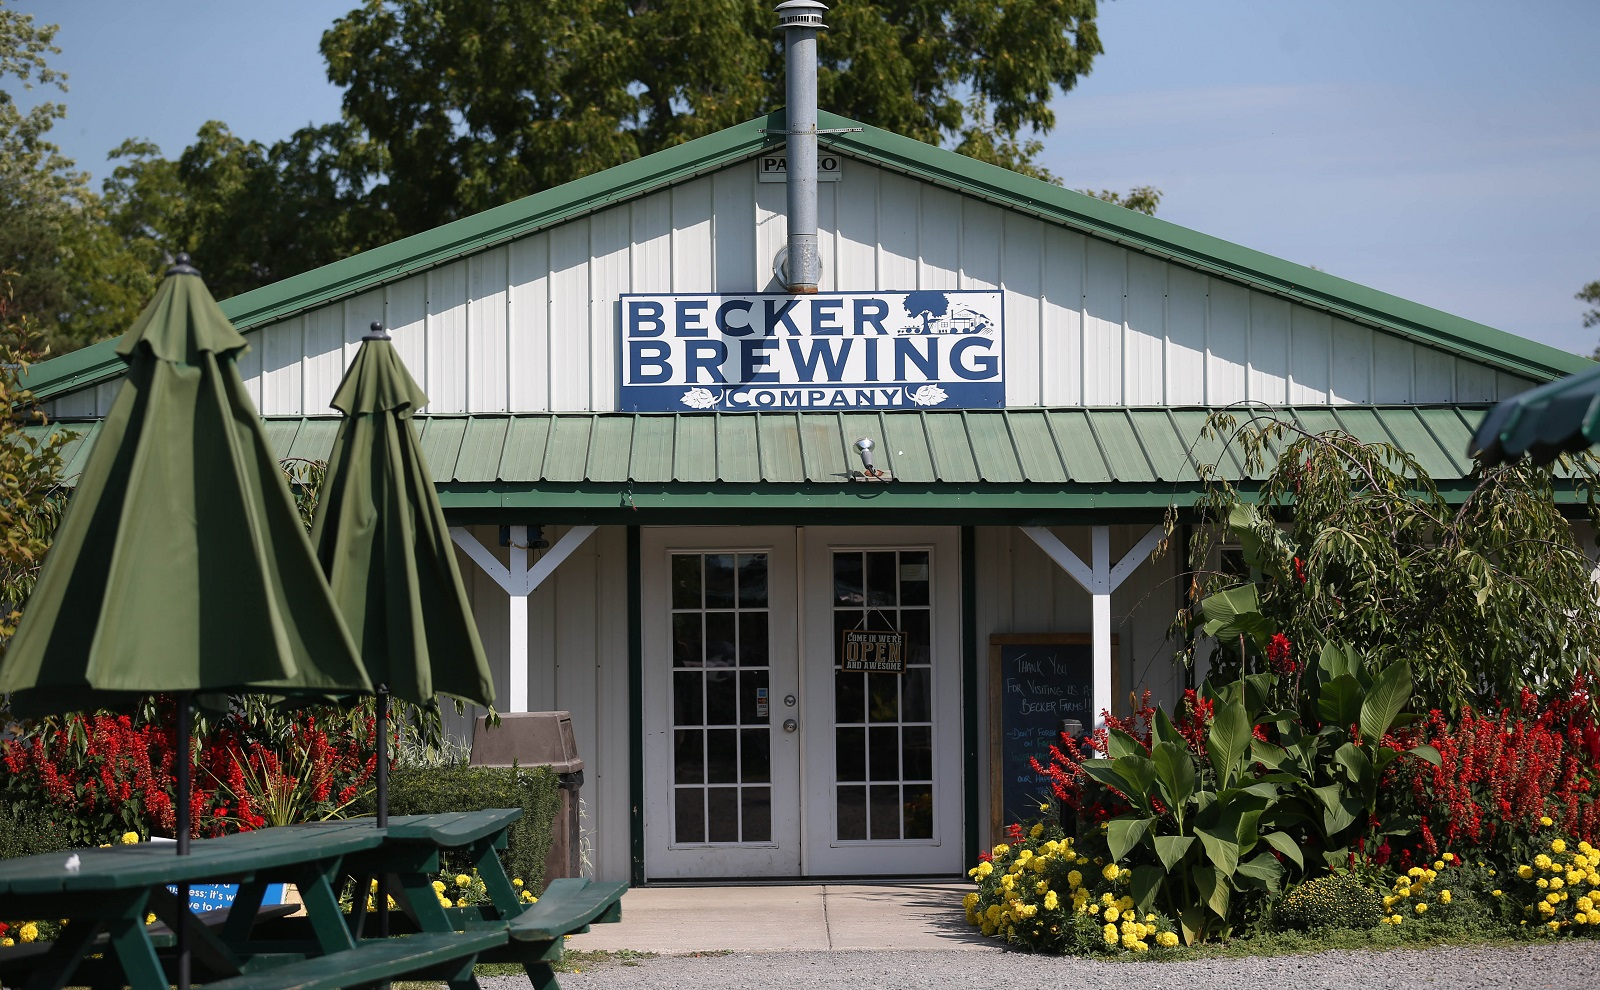 The Becker Brewing Company is at Becker Farms at 3724 Quaker Road in Gasport. (Sharon Cantillon/Buffalo News)